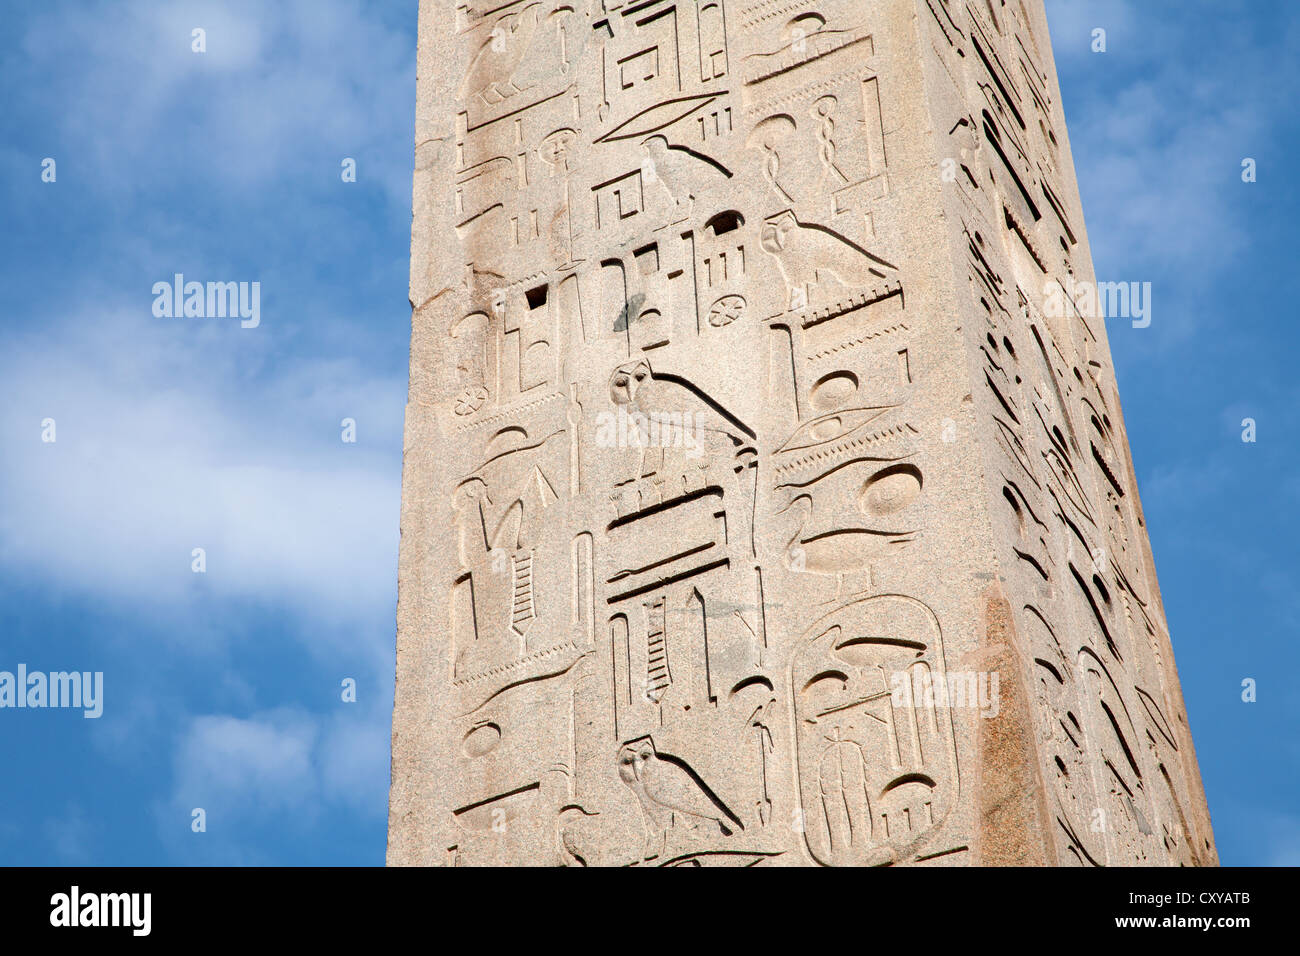 Rome - detail of hieroglyphs from obelisk by Lateran basilica - Stock Image